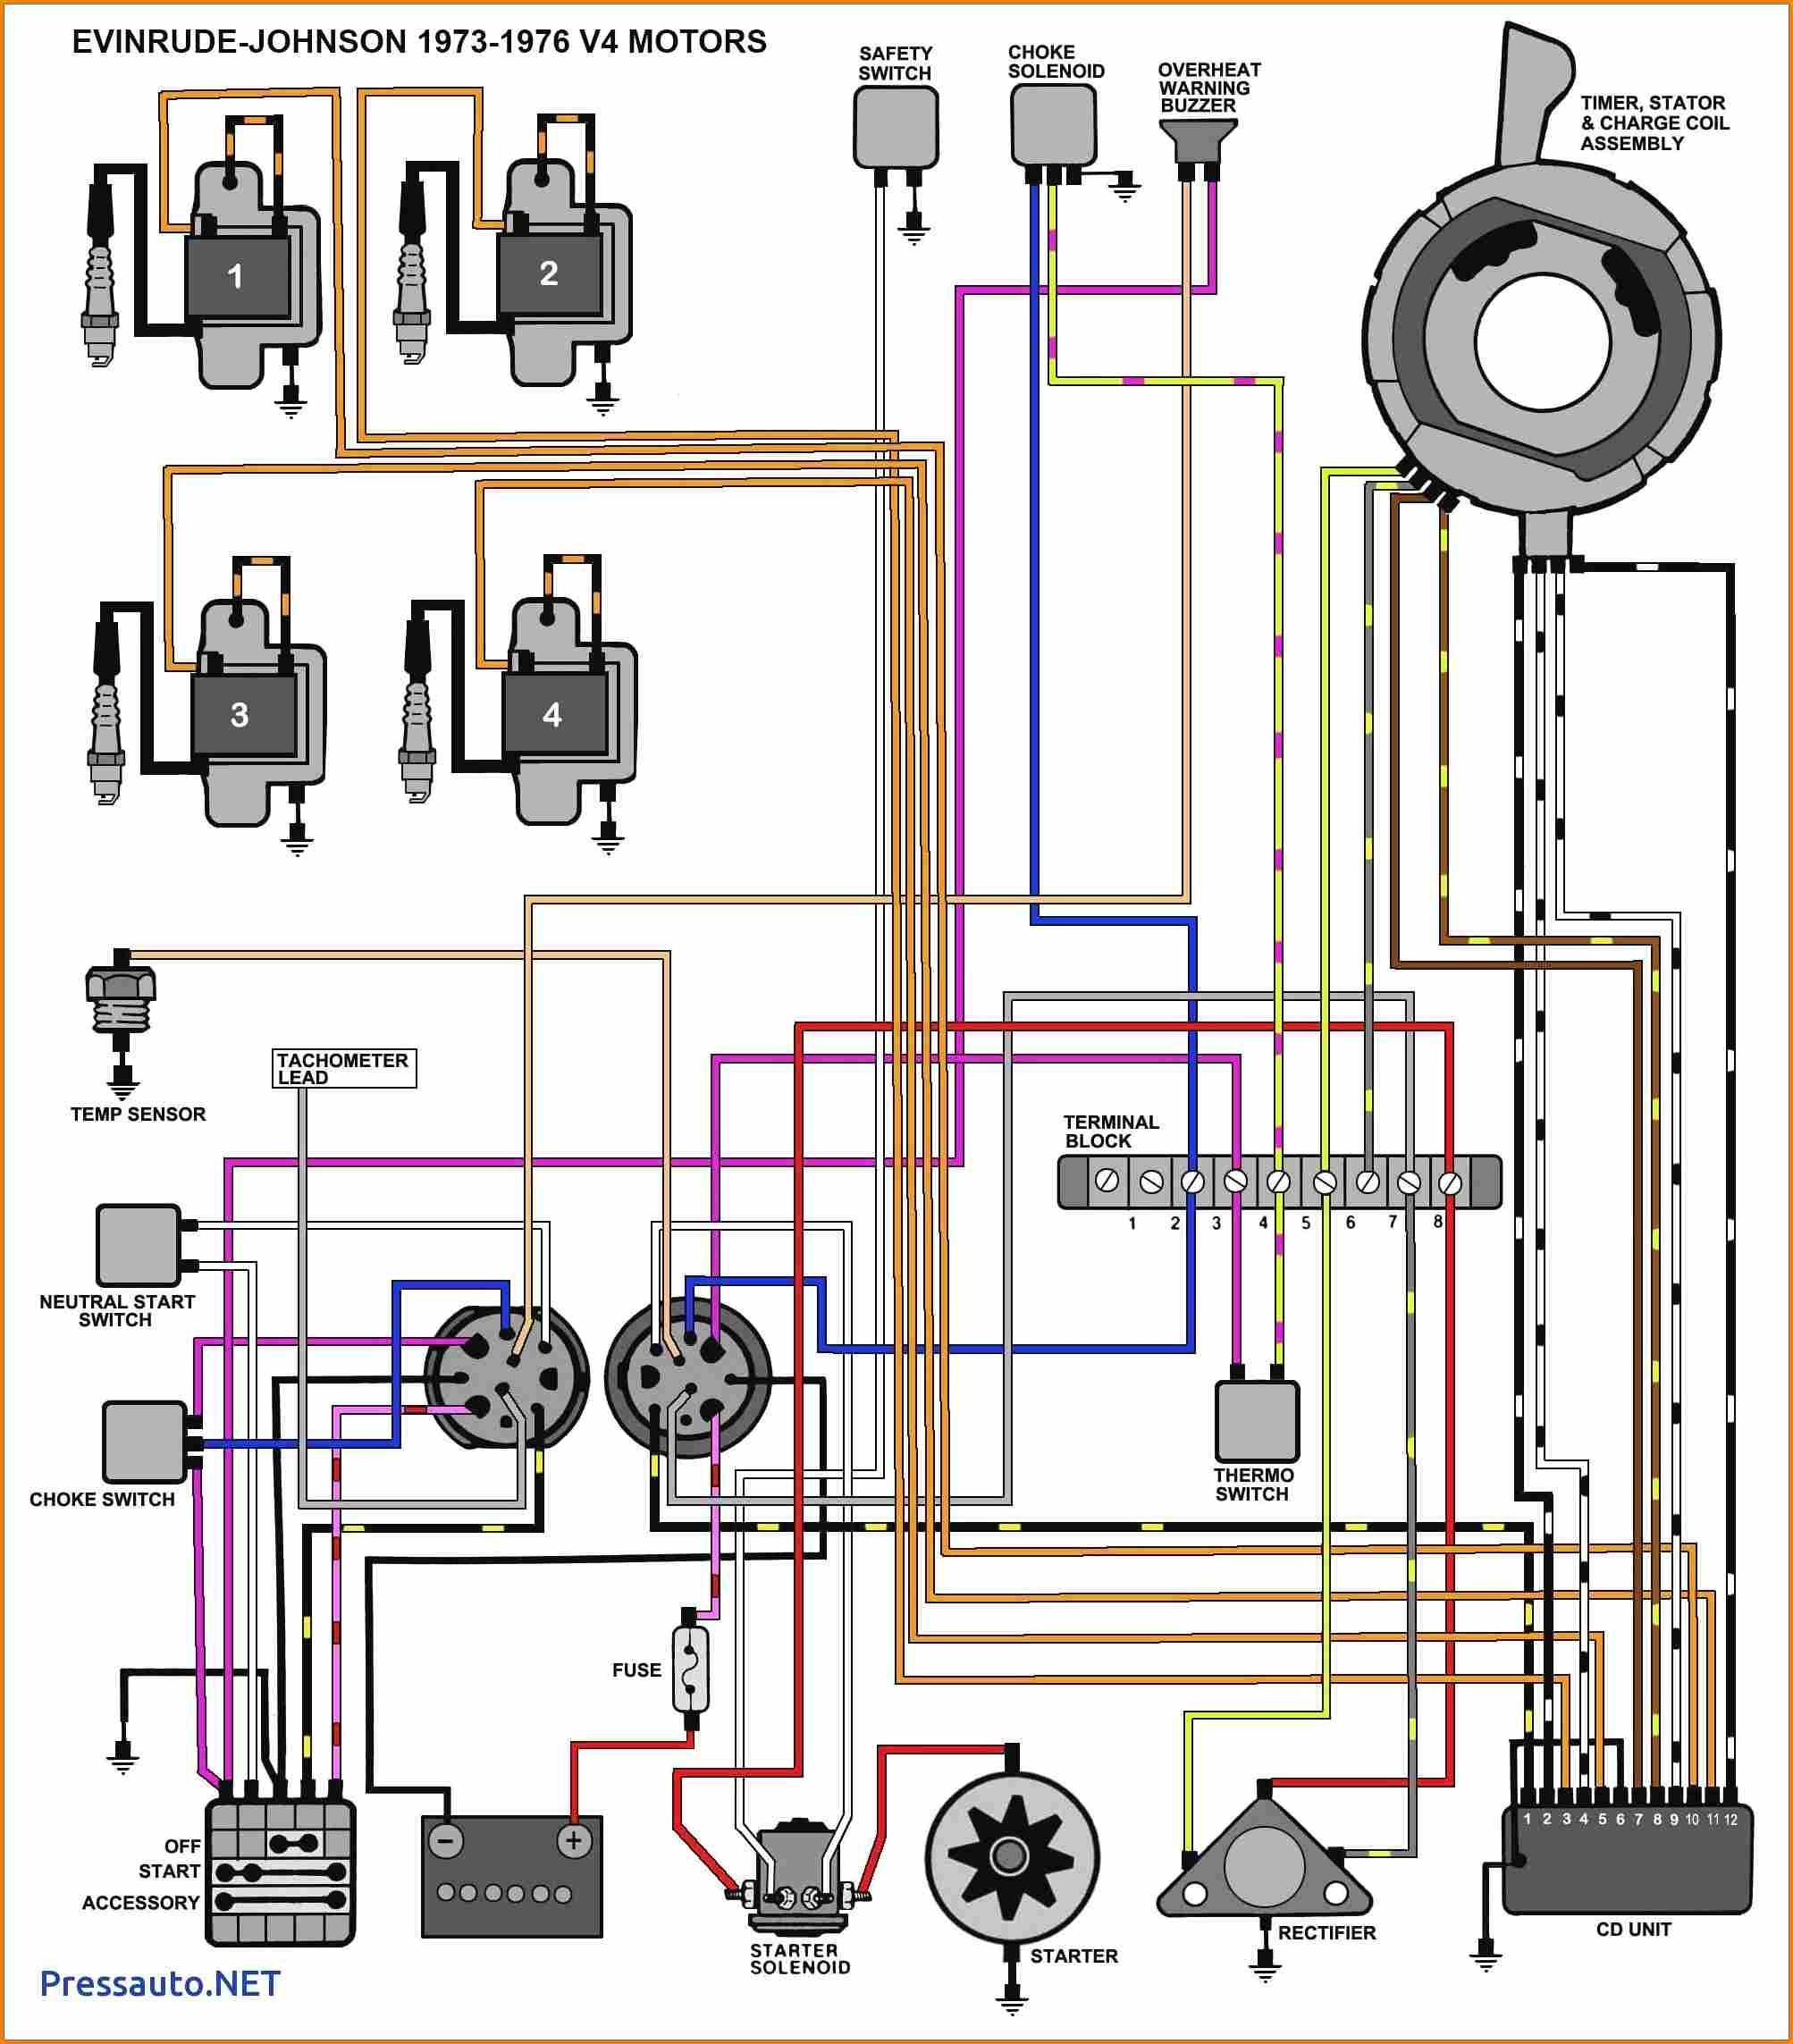 70 Hp Evinrude Wiring Diagram | Wiring Schematic Diagram Yamaha Outboard Wiring Diagram on